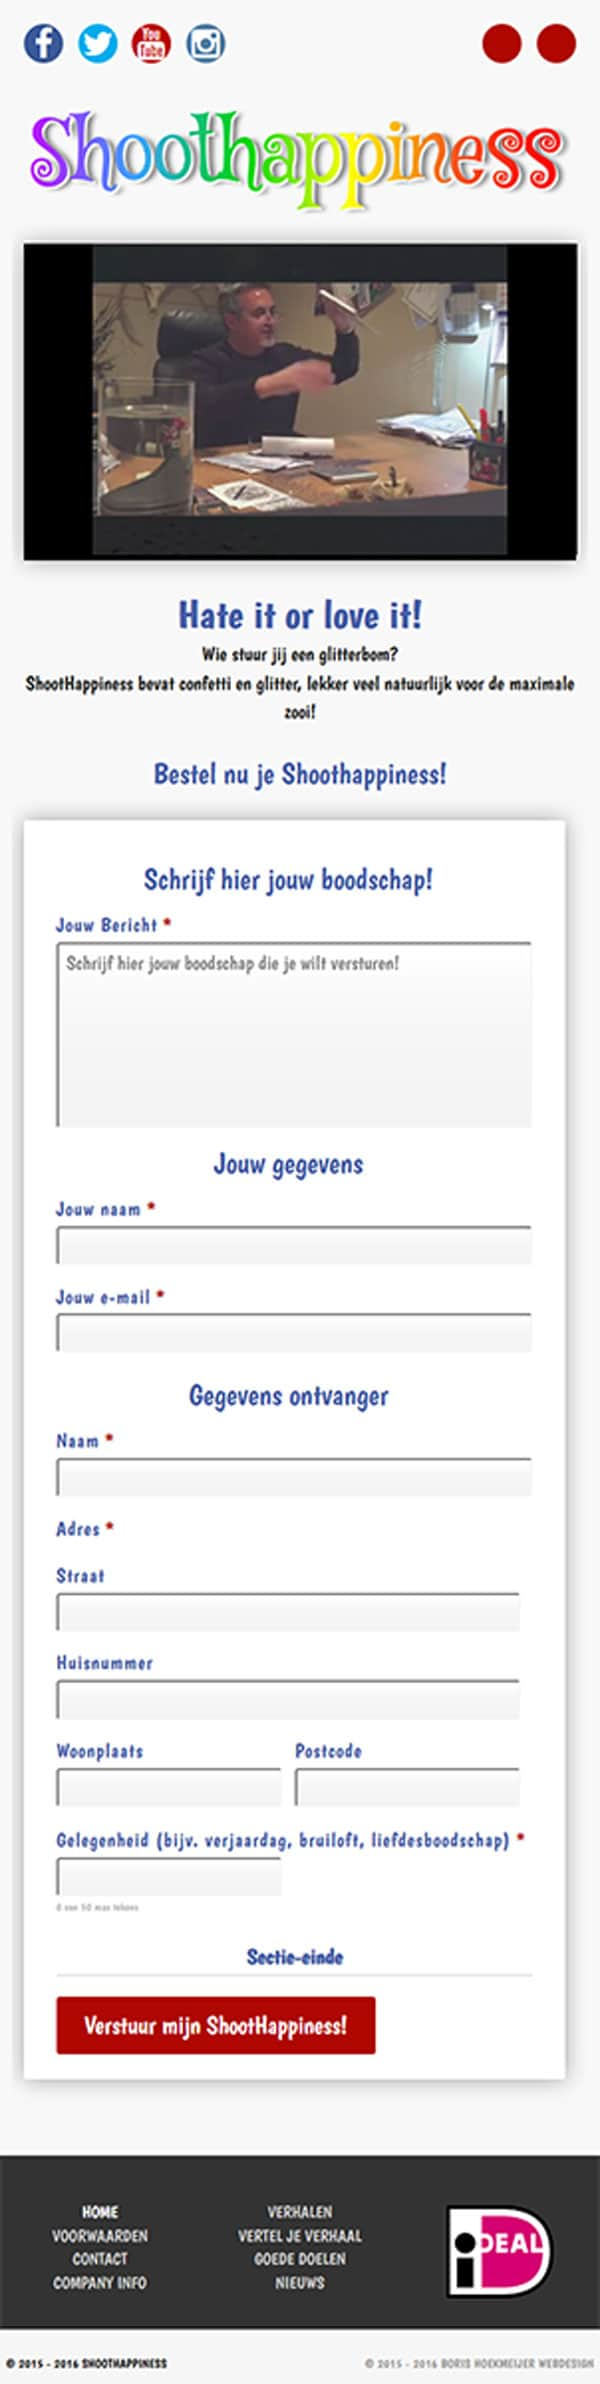 website ontwerp shoothappiness homepage mobile